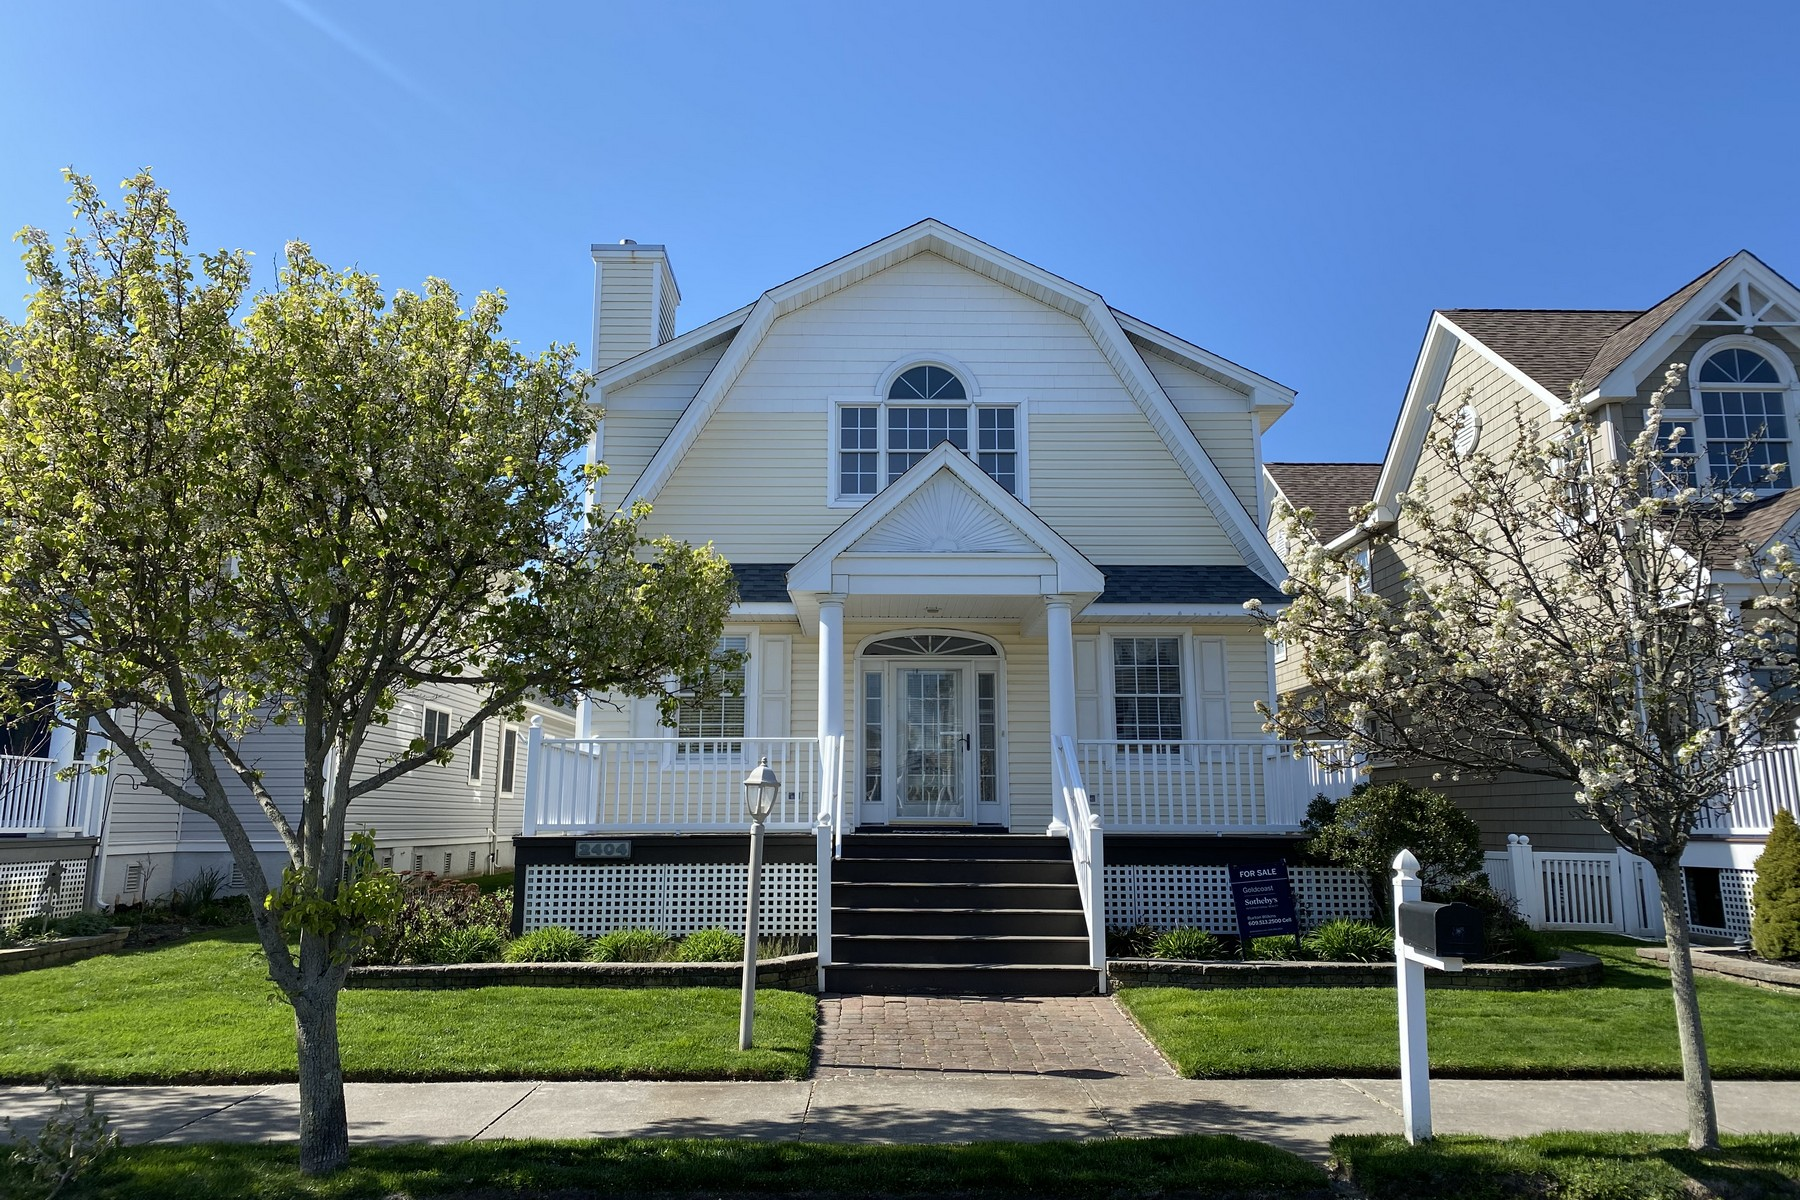 Single Family Homes for Sale at Immaculate Two Story Home 2404 Haven Ave Ocean City, New Jersey 08226 United States